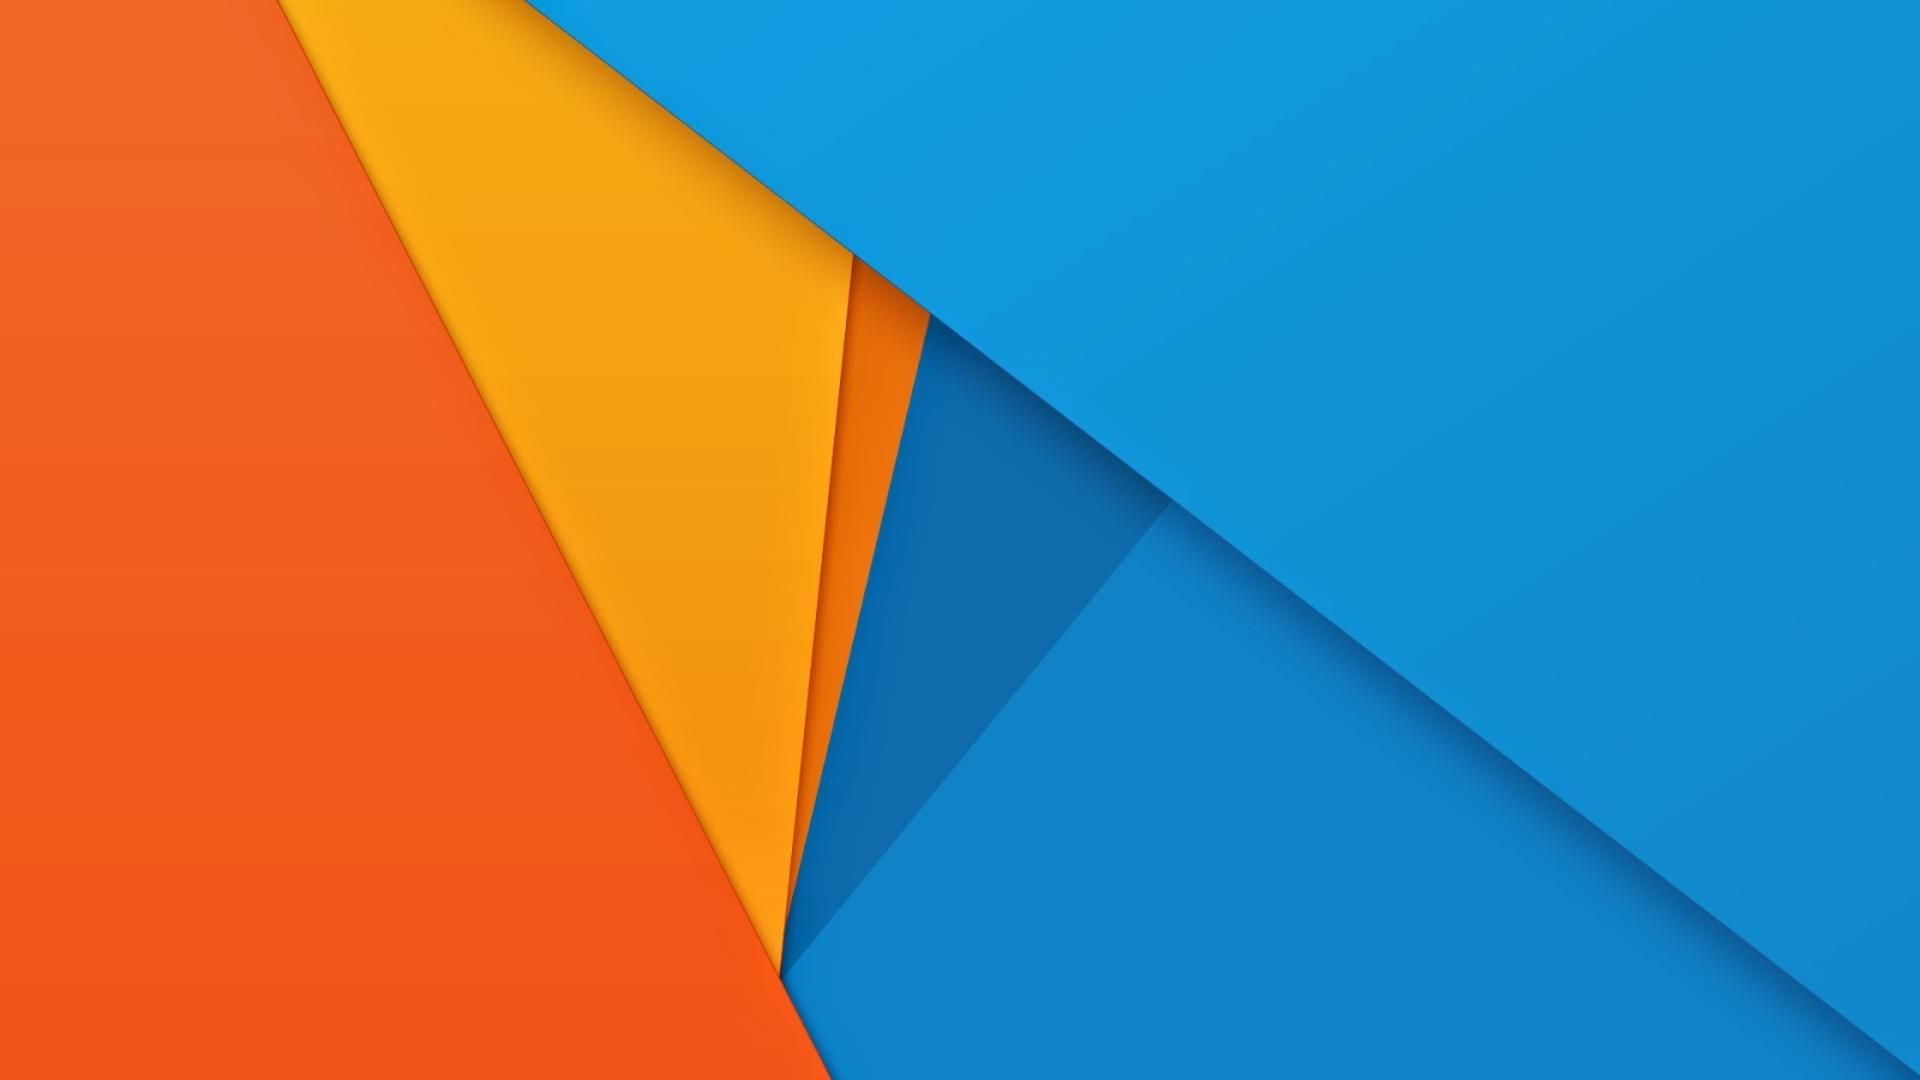 Background Material Design